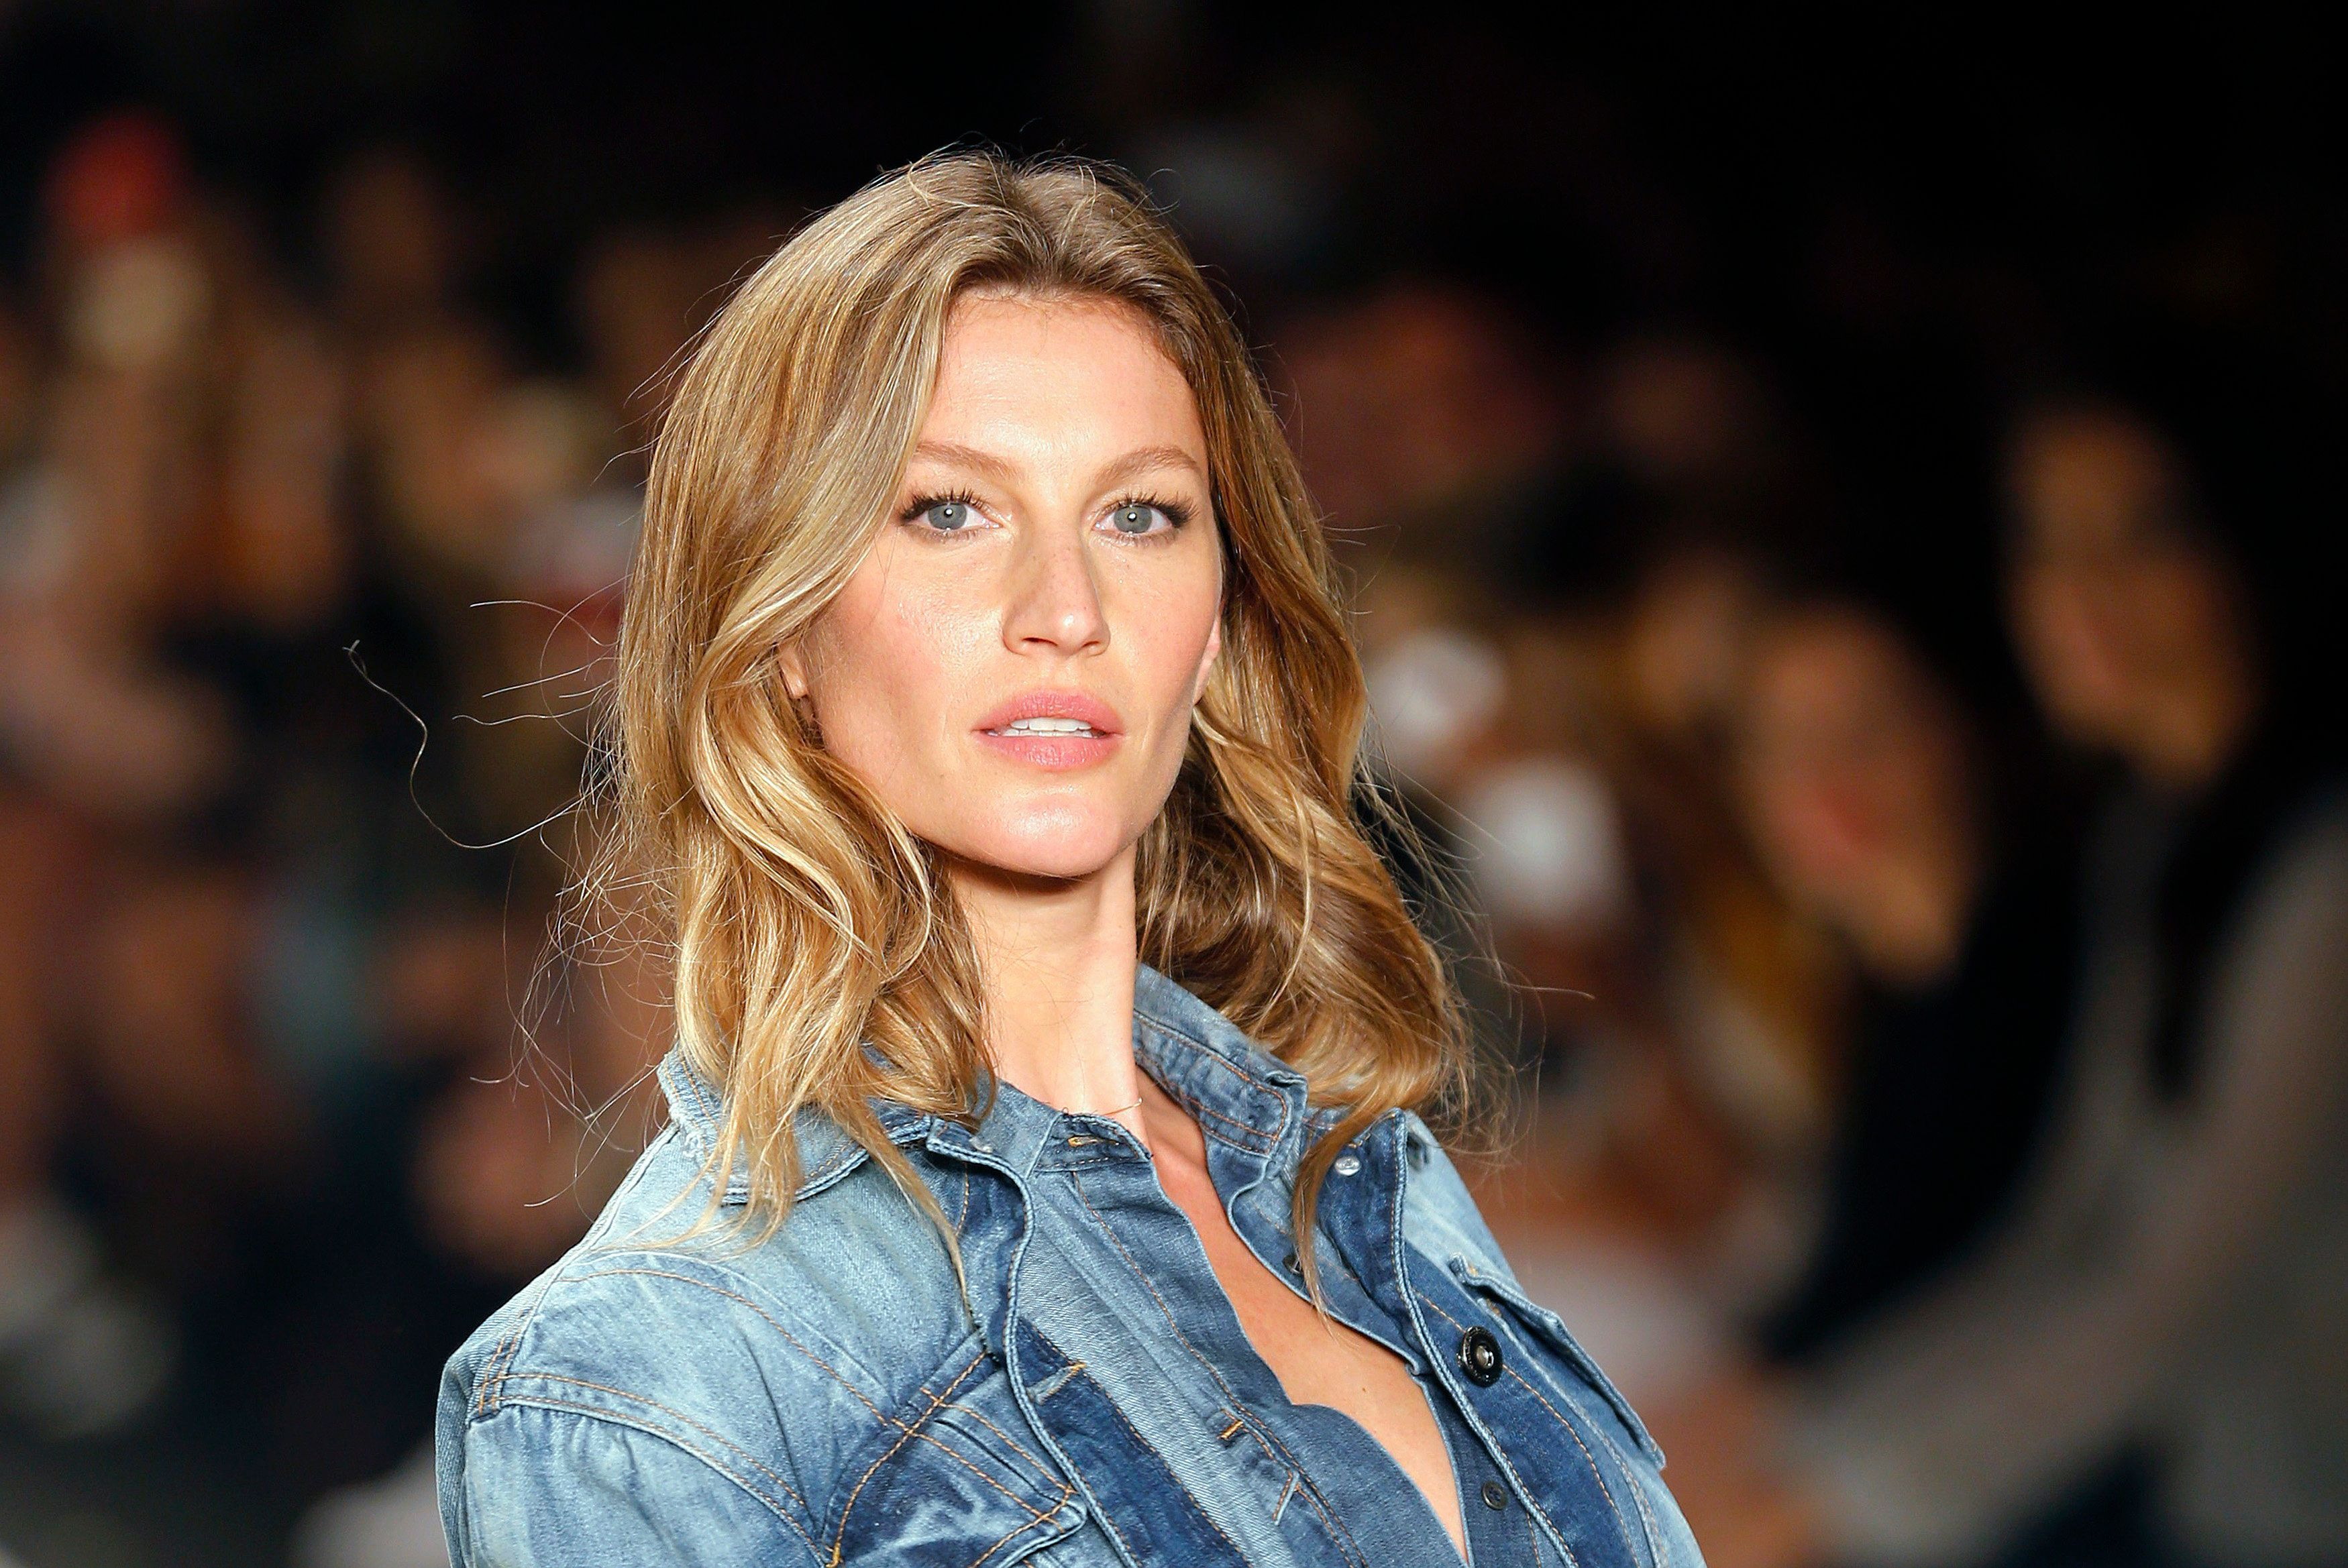 Gisele Bündchen got breast implants and instantly regretted it pictures